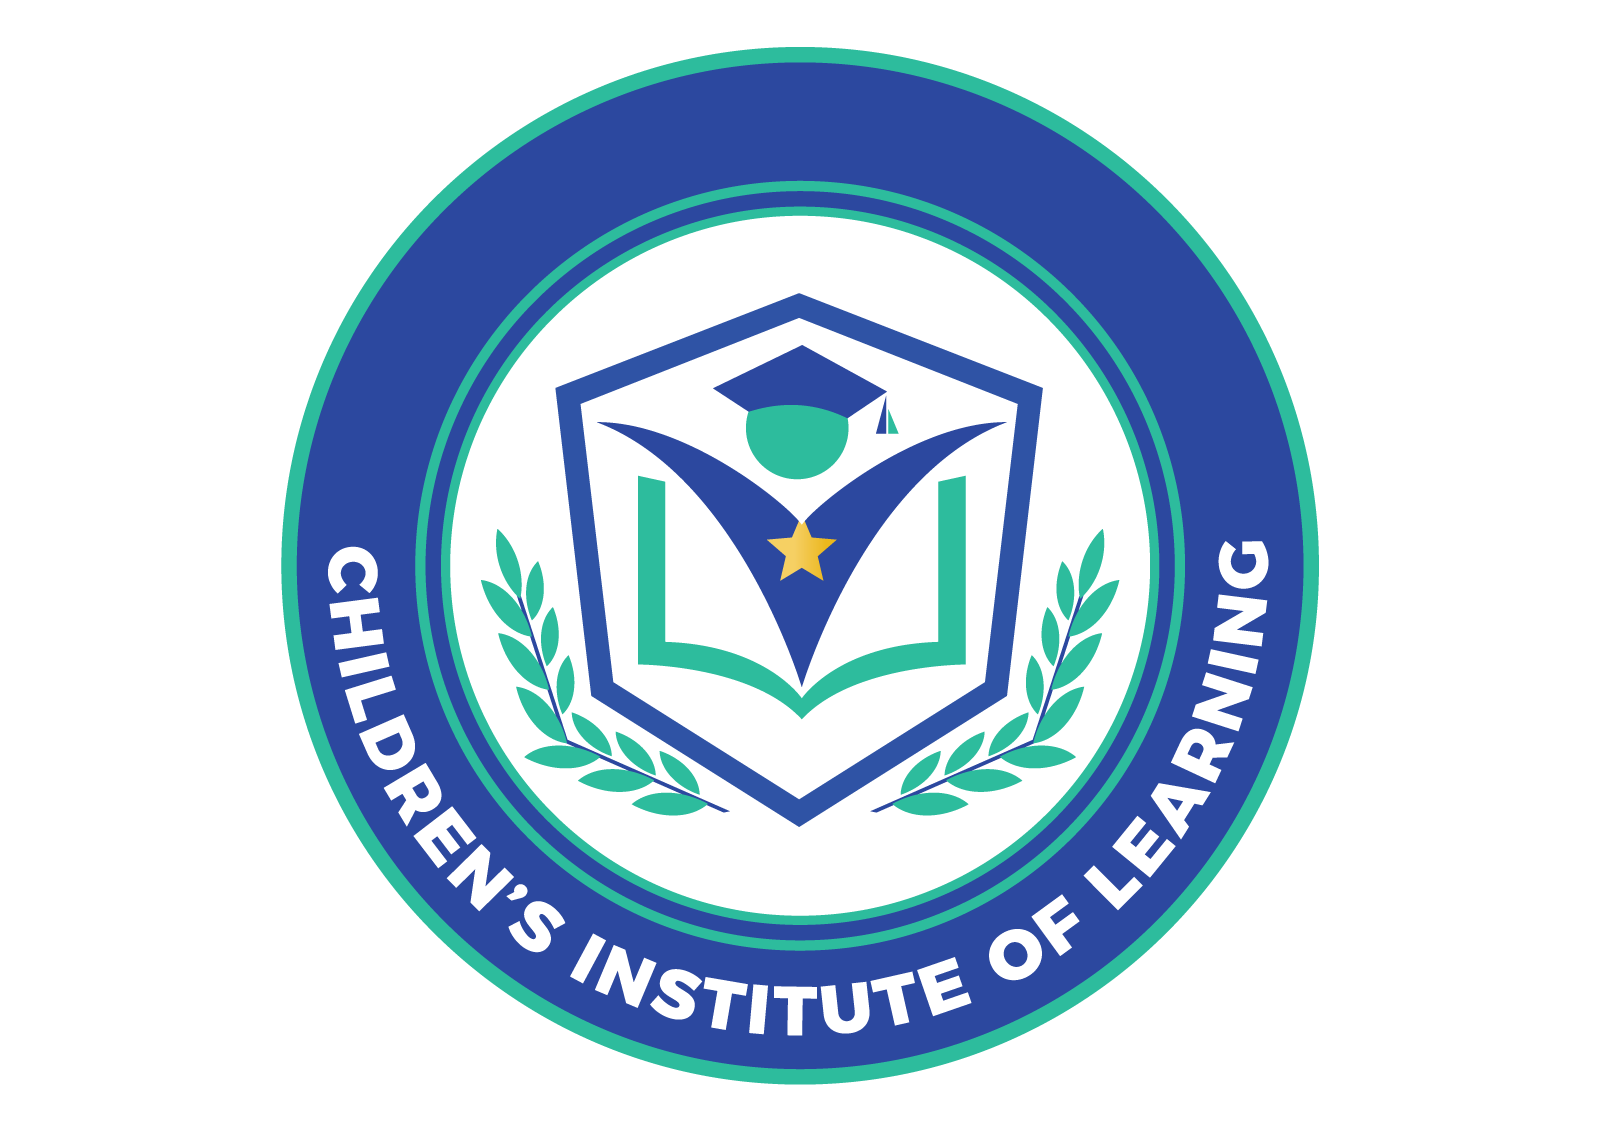 Children's Institute of Learning